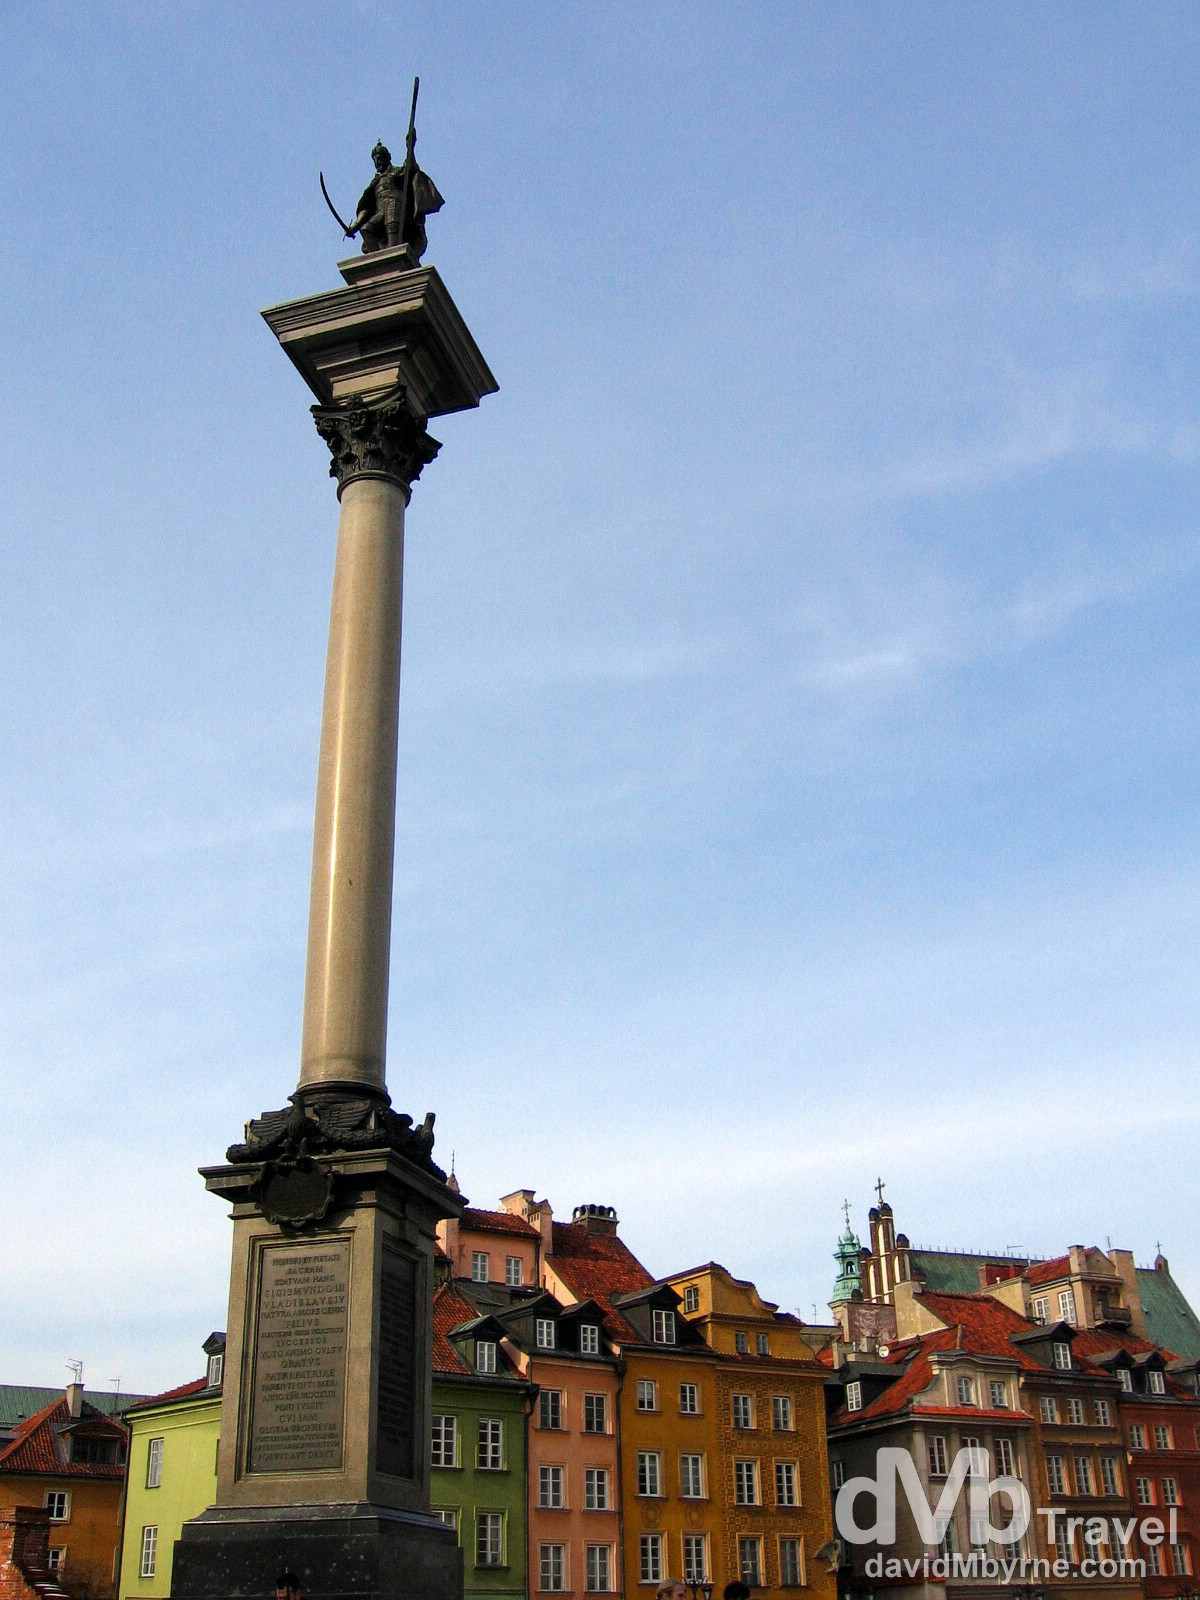 The Sigismund III Vasa pillar/statue in Castle Square, Old Town, Warsaw, Poland. March 5, 2006.